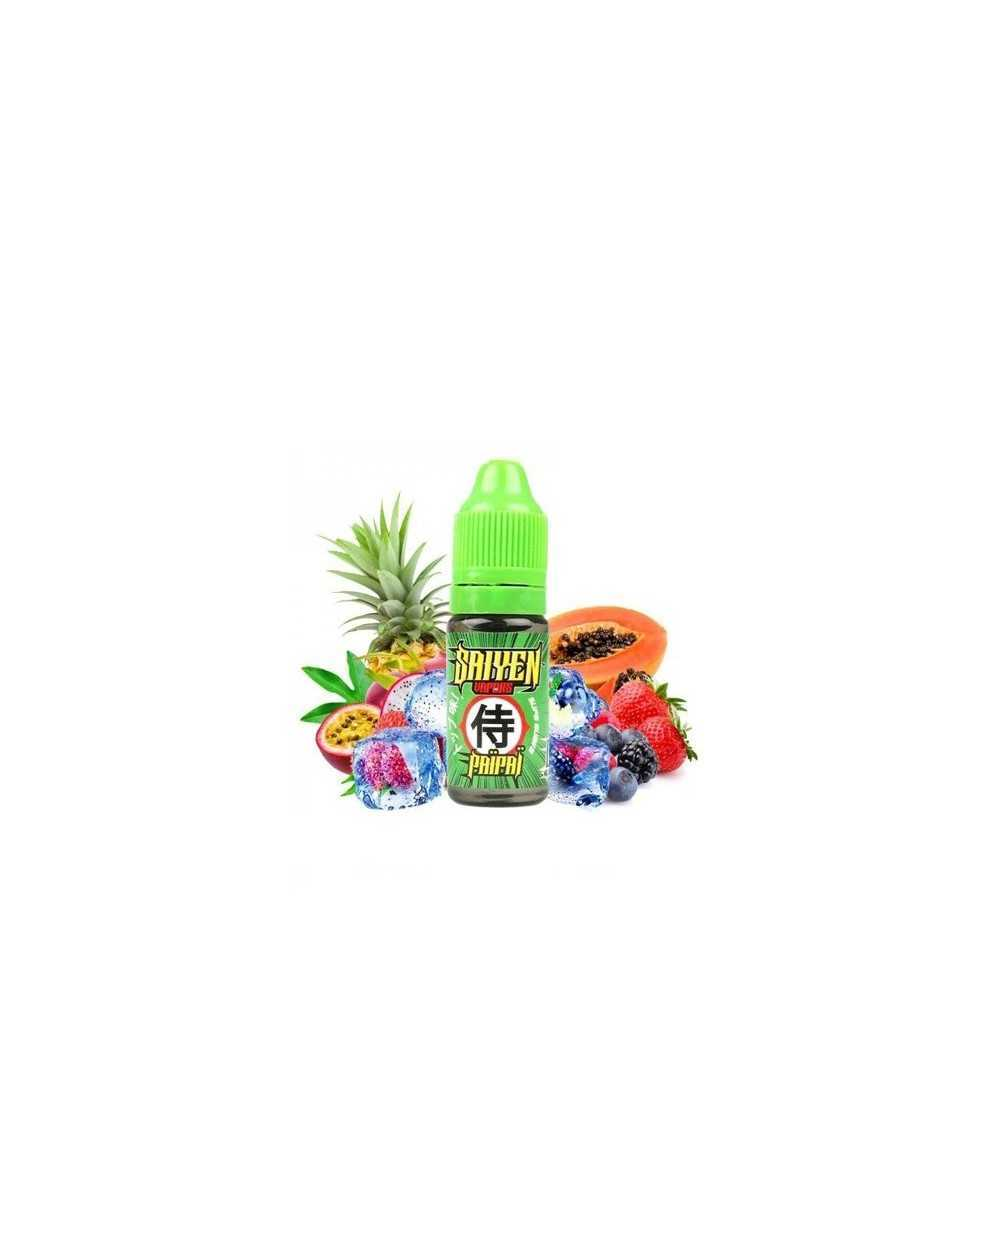 Païpaï 10ml - Saiyen Vapors of Swoke-1